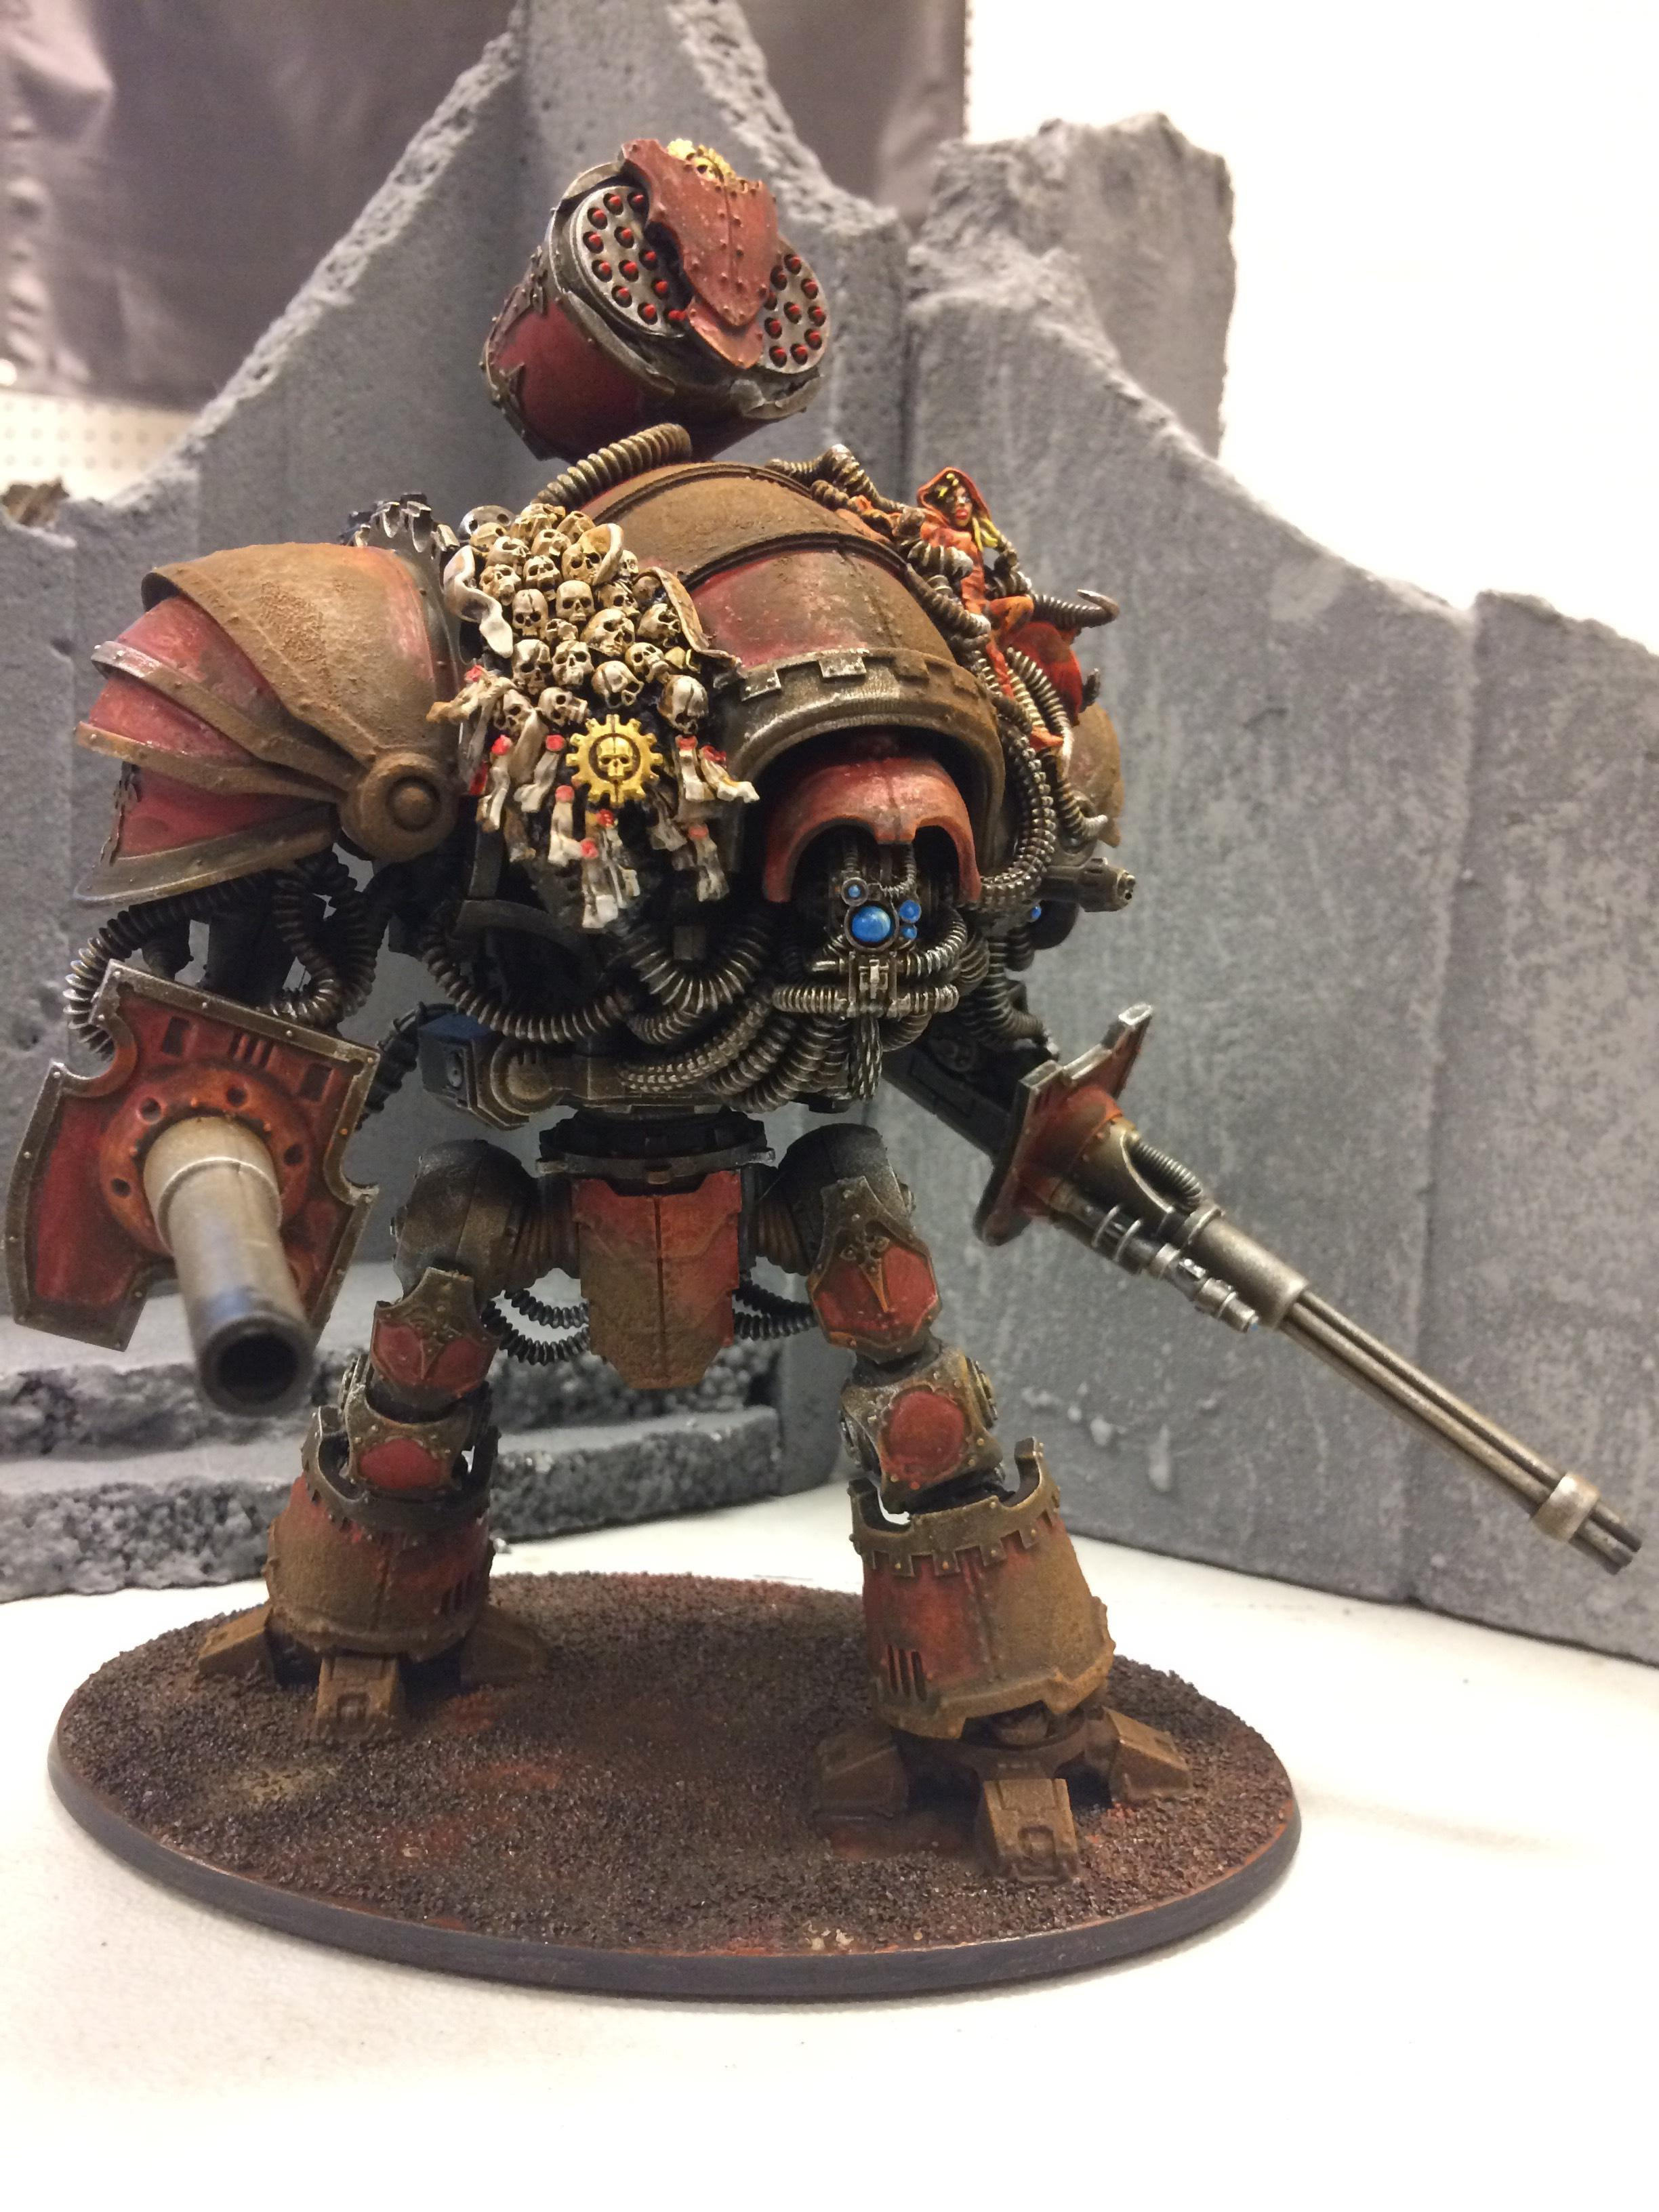 Imperial, Imperial Knight, Knights, Warhammer 40,000